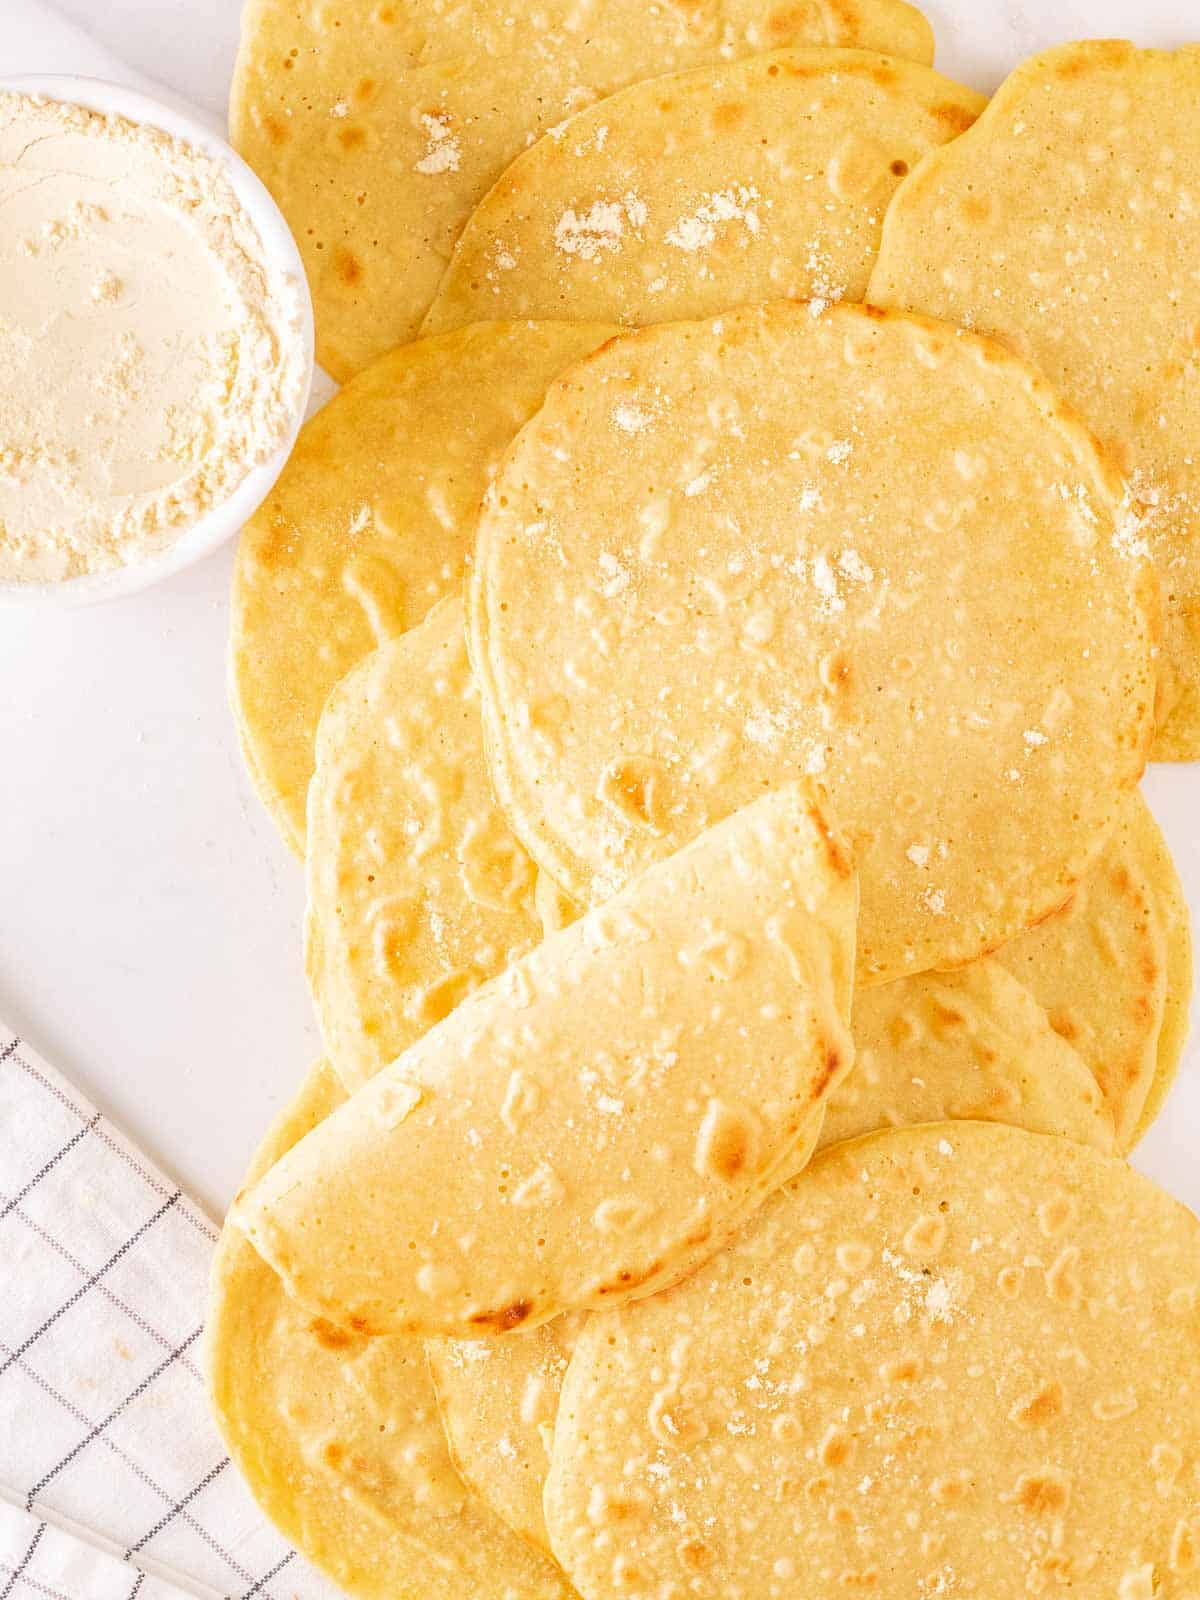 An overhead shot of chickpea flour tortillas on a white background.